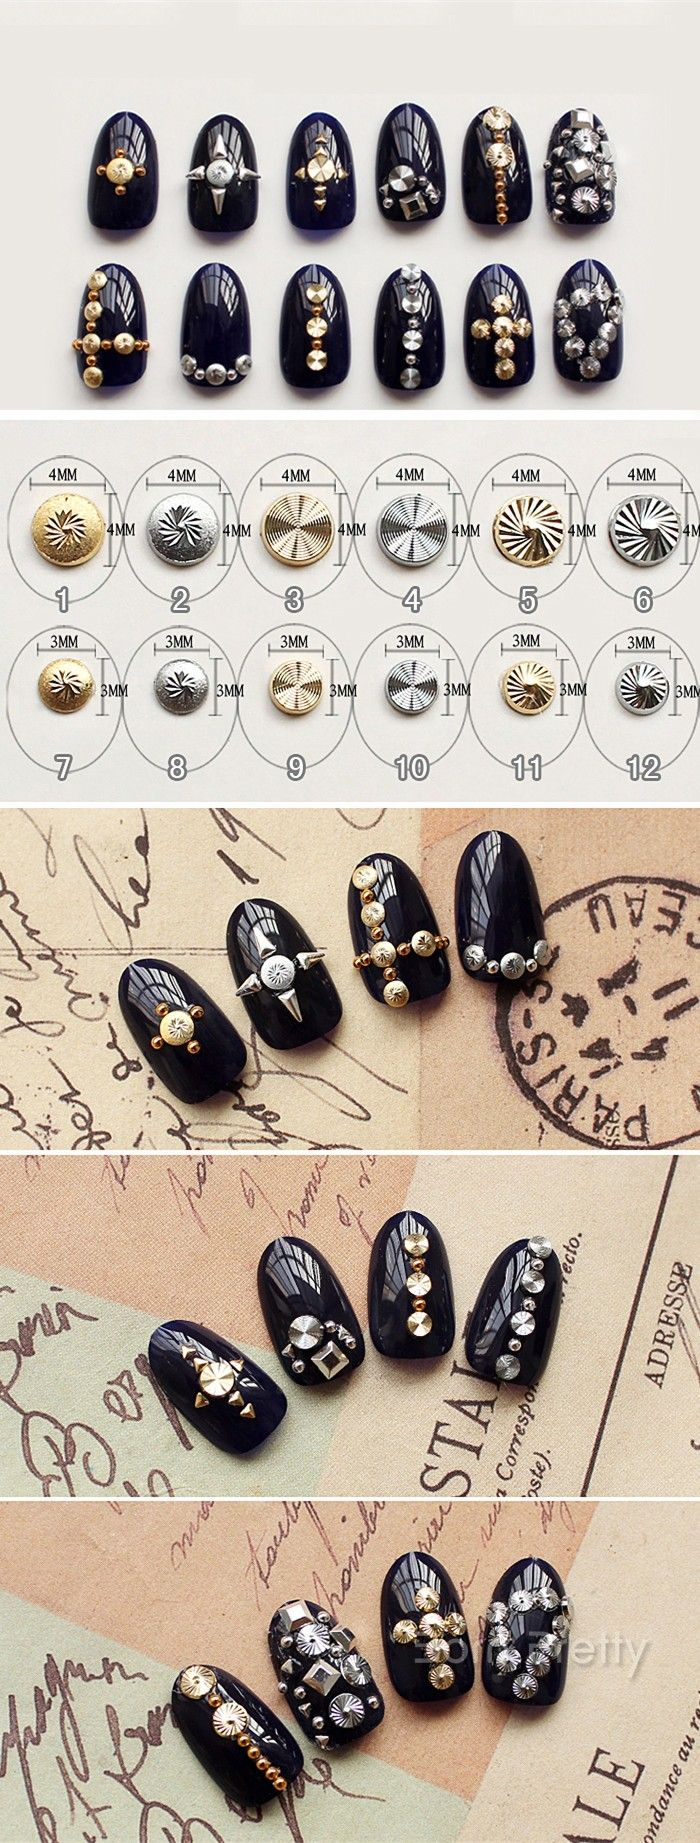 $2.13 10Pcs/set Gold Silver Spiral Round Nail Studs Charming 3D Nail Art Decoration - BornPrettyStore.com